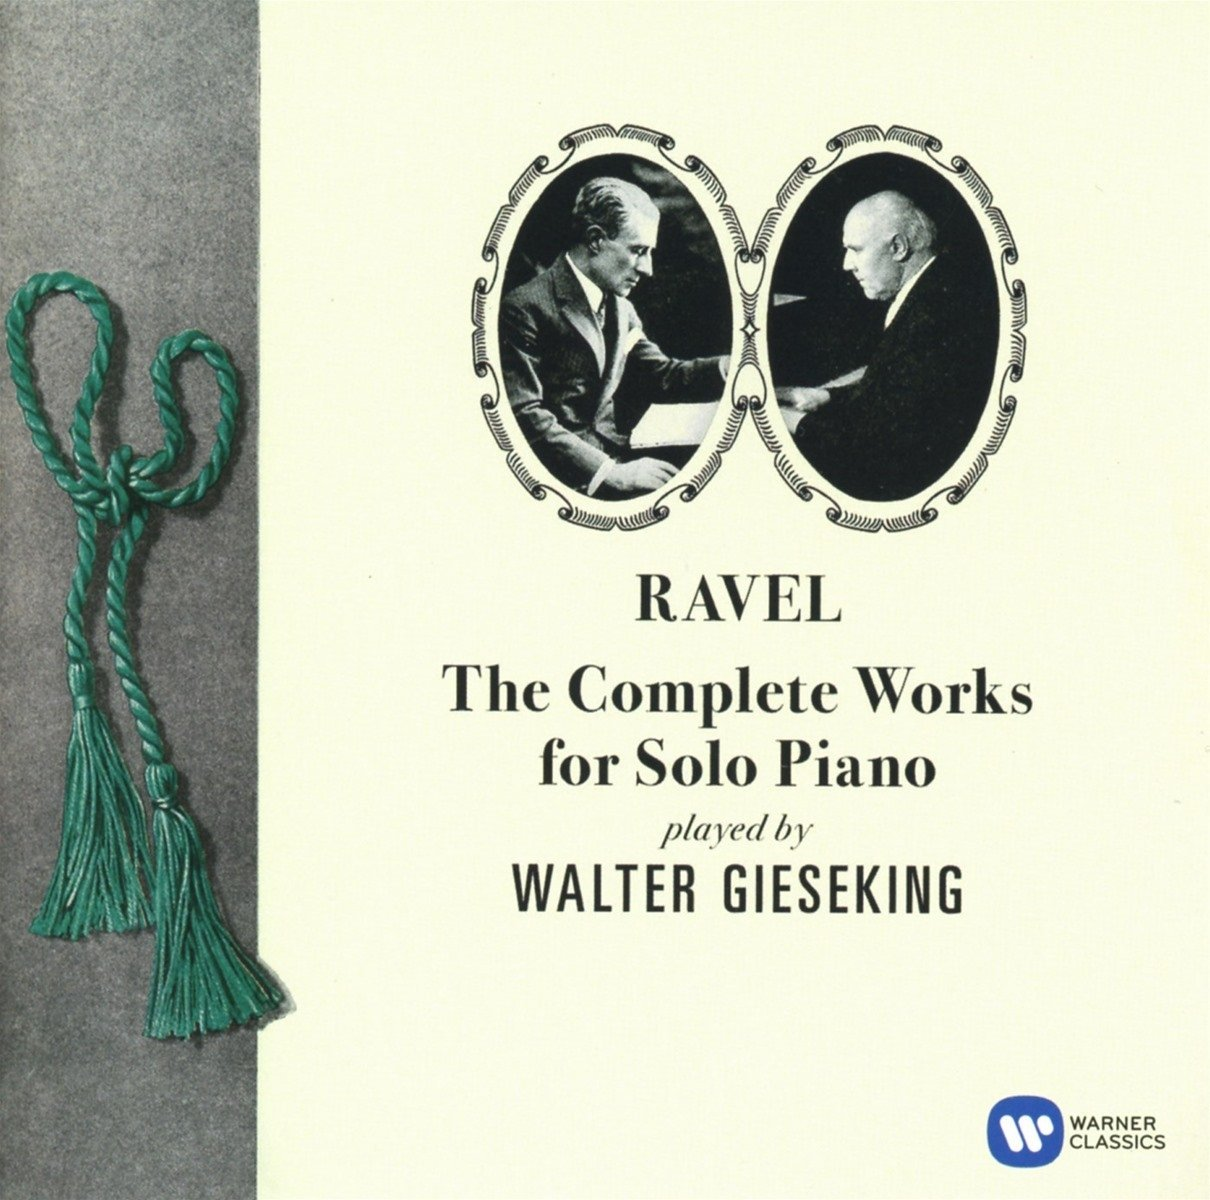 Ravel - The Complete Works for Solo Piano